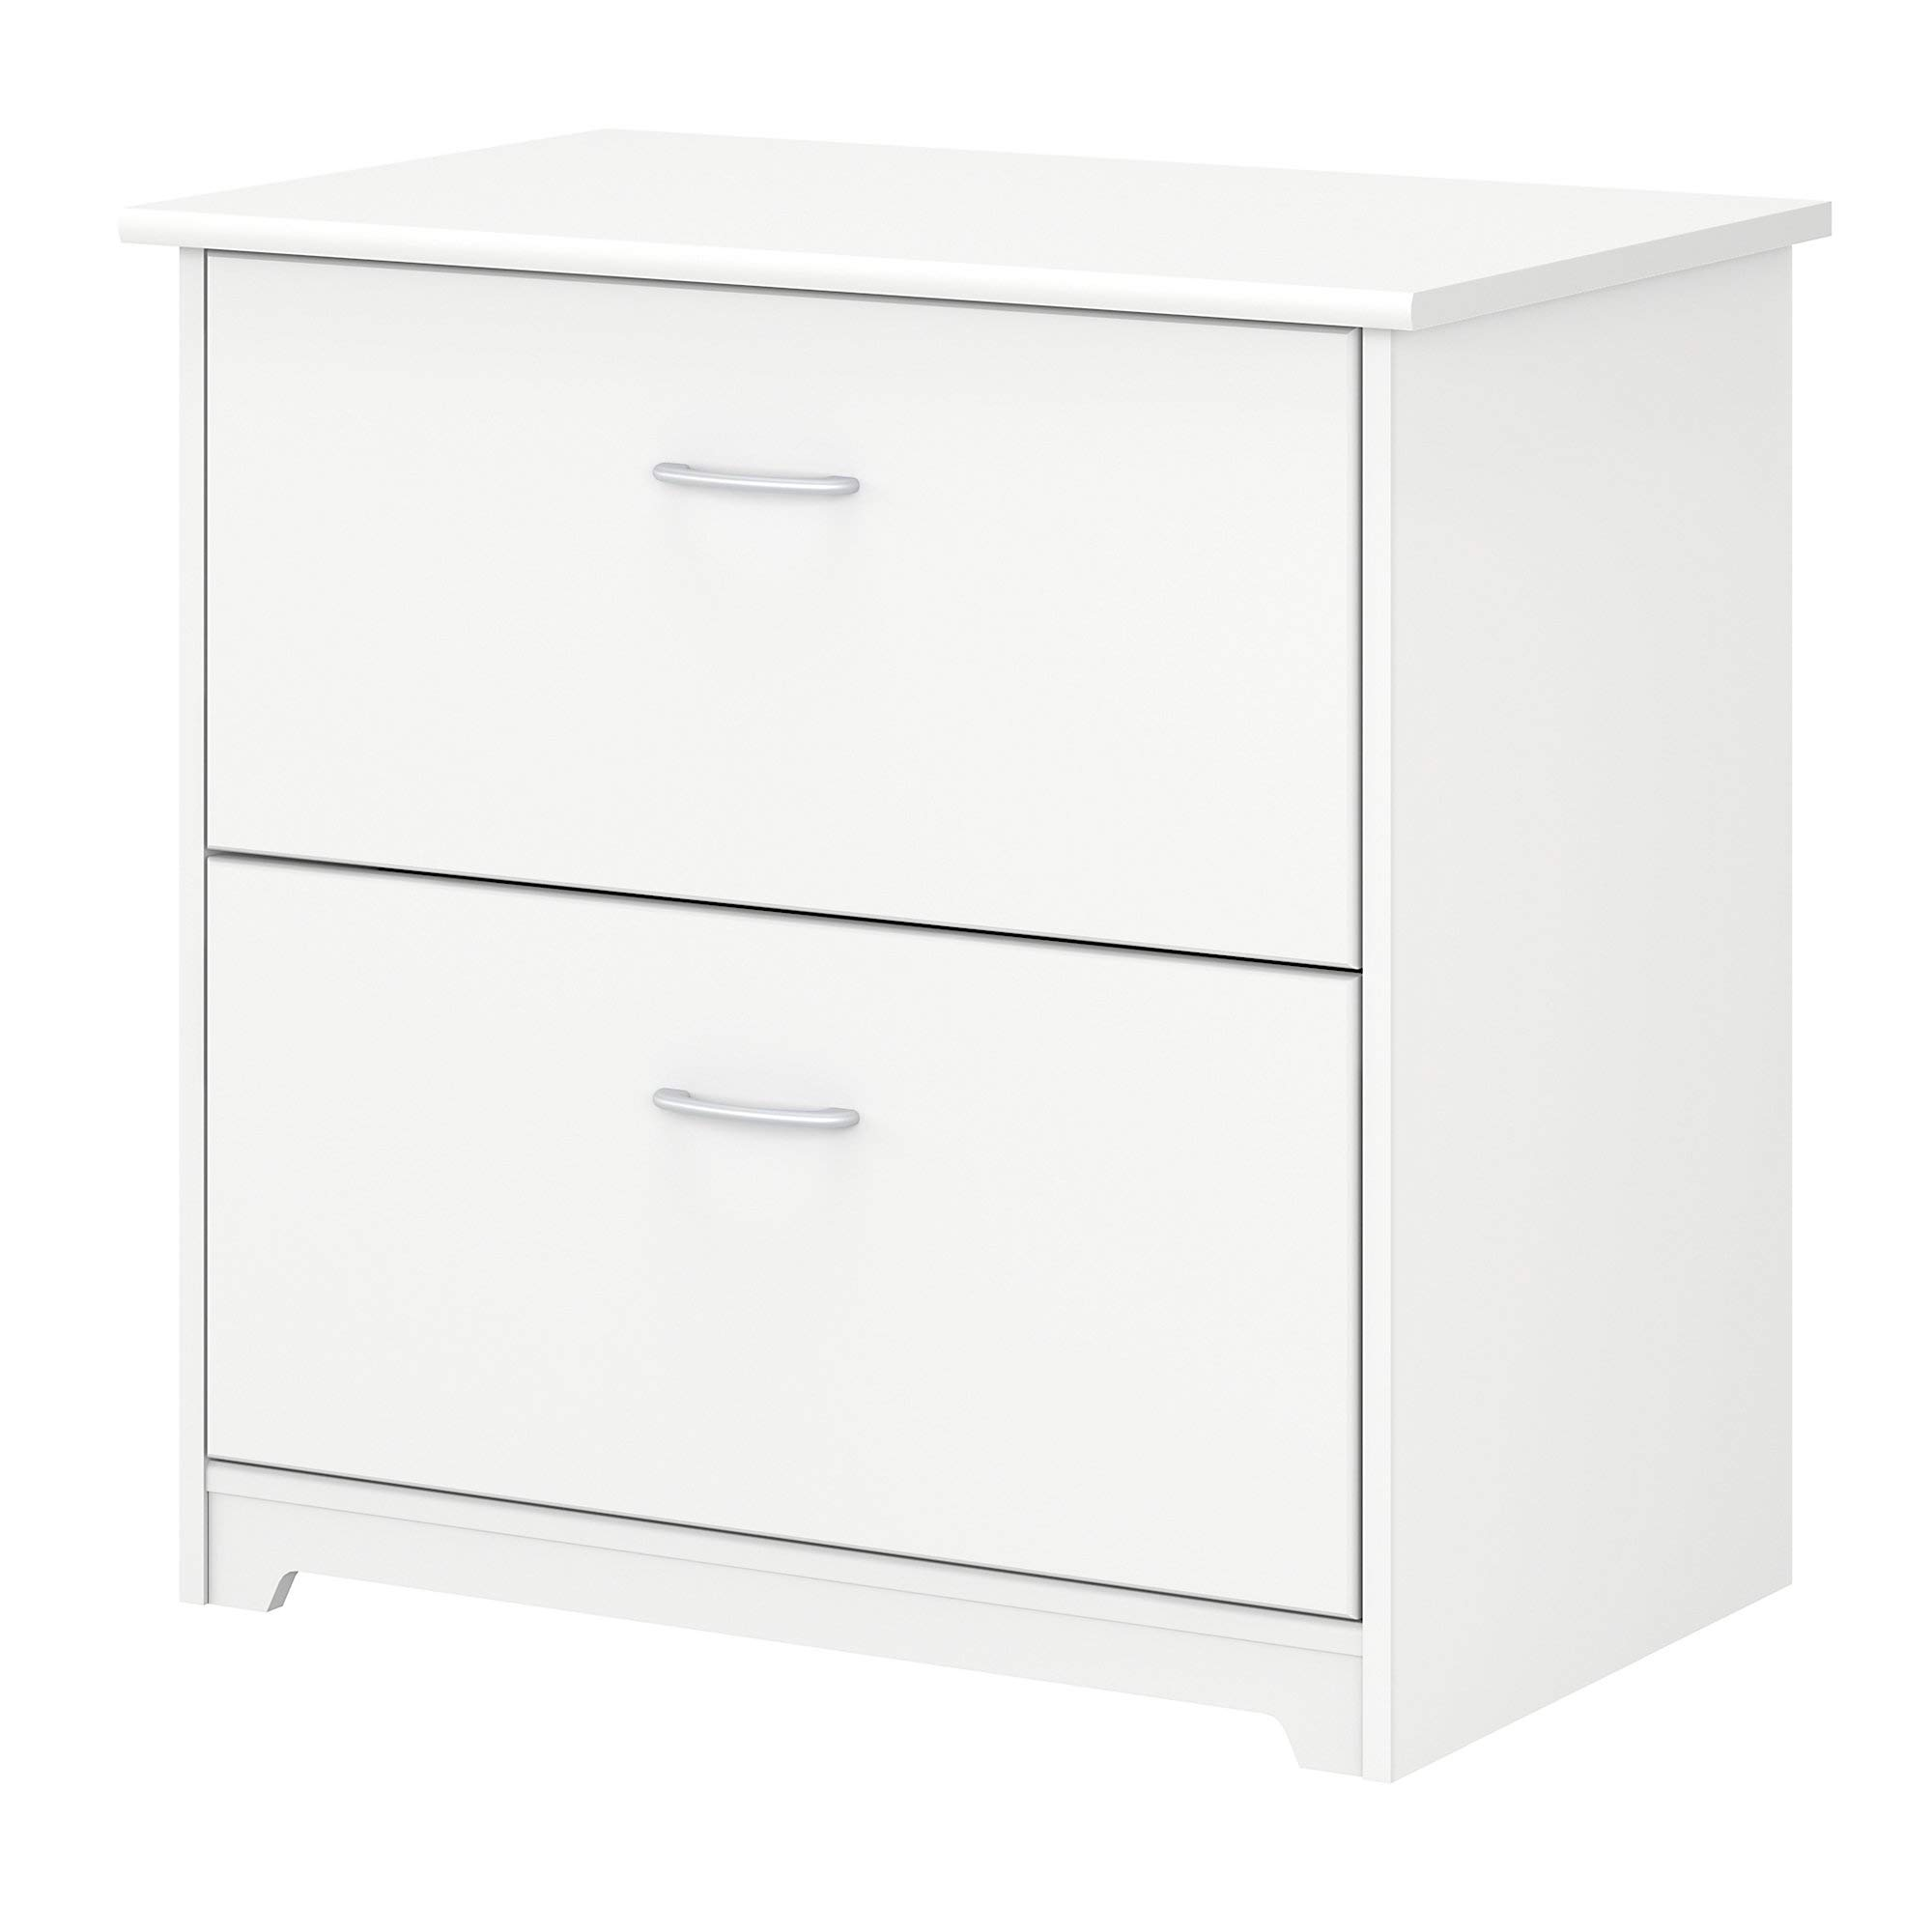 Bush Furniture Cabot 2 Drawer Lateral File Cabinet, White by Bush Furniture